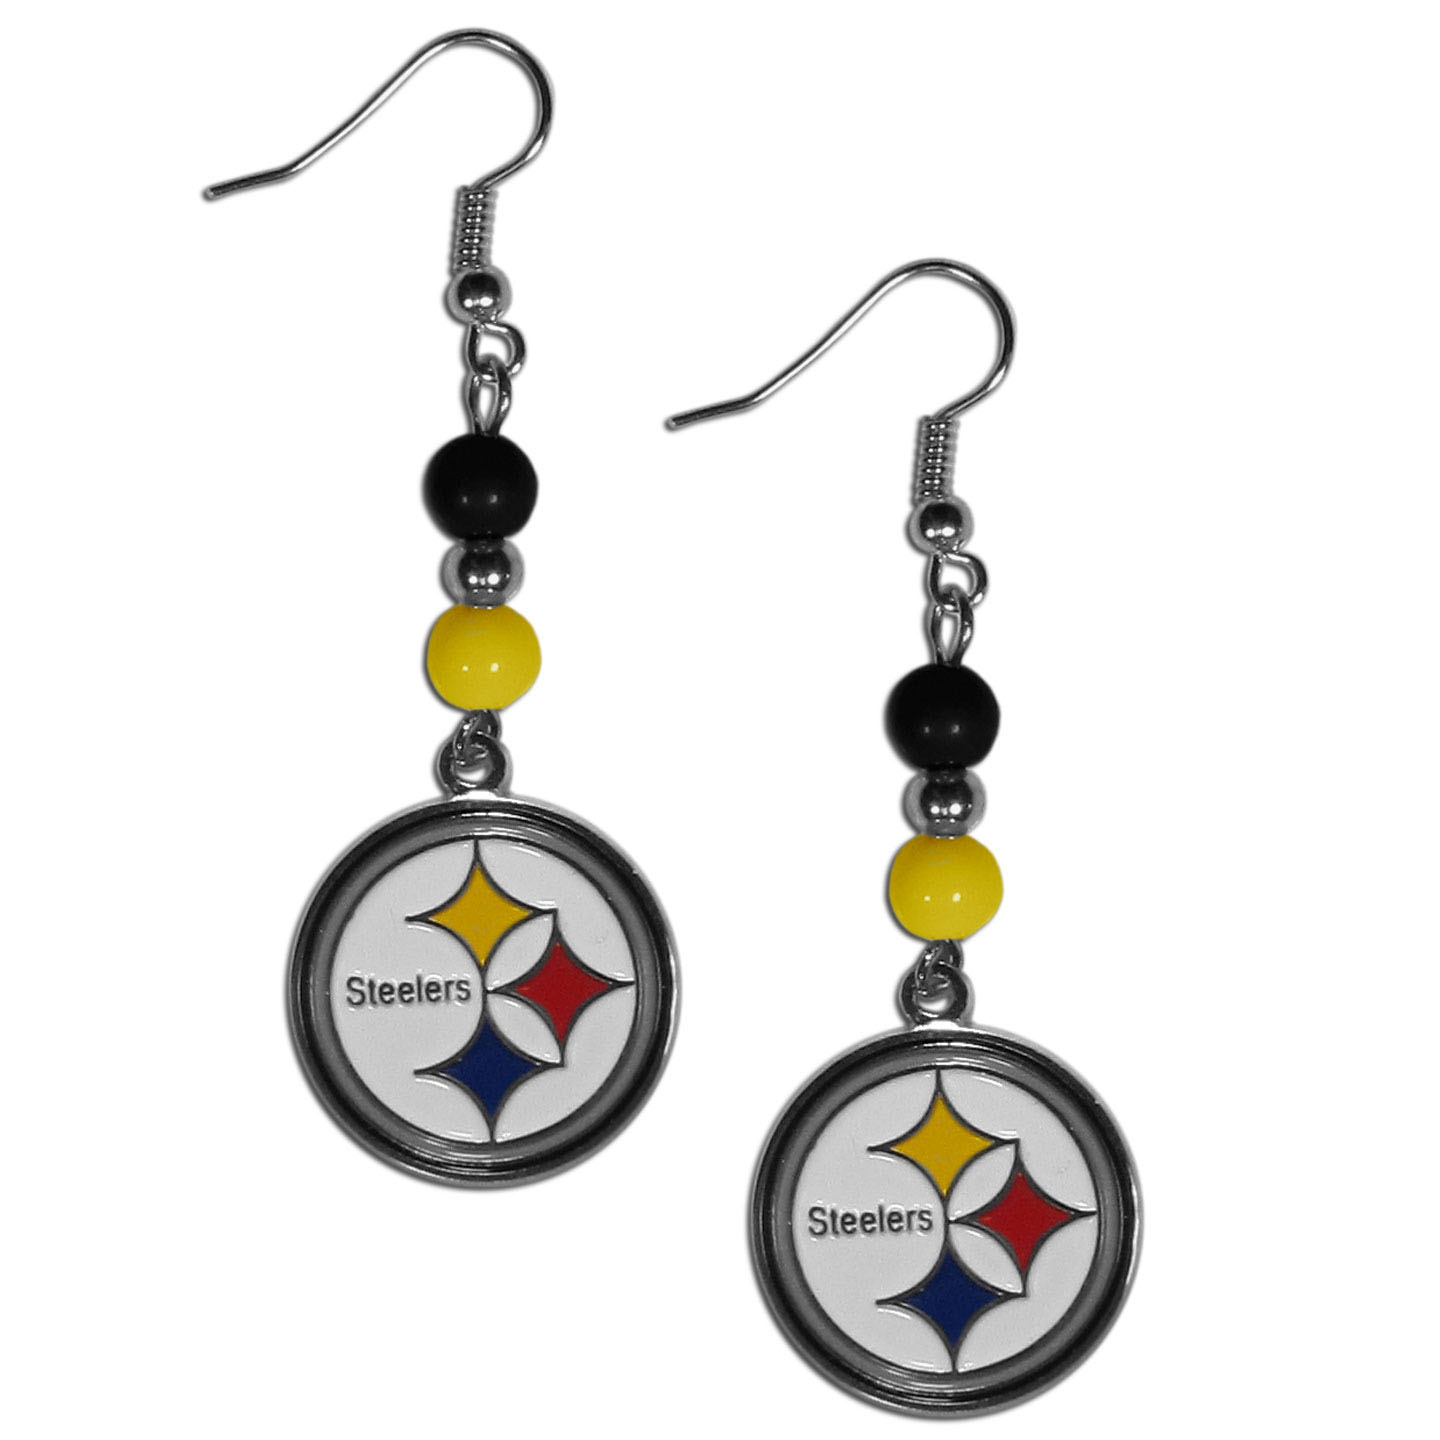 Pittsburgh Steelers Fan Bead Dangle Earrings - Love your team, show it off with our Pittsburgh Steelers bead dangle earrings! These super cute earrings hang approximately 2 inches and features 2 team colored beads and a high polish team charm. A must have for game day!